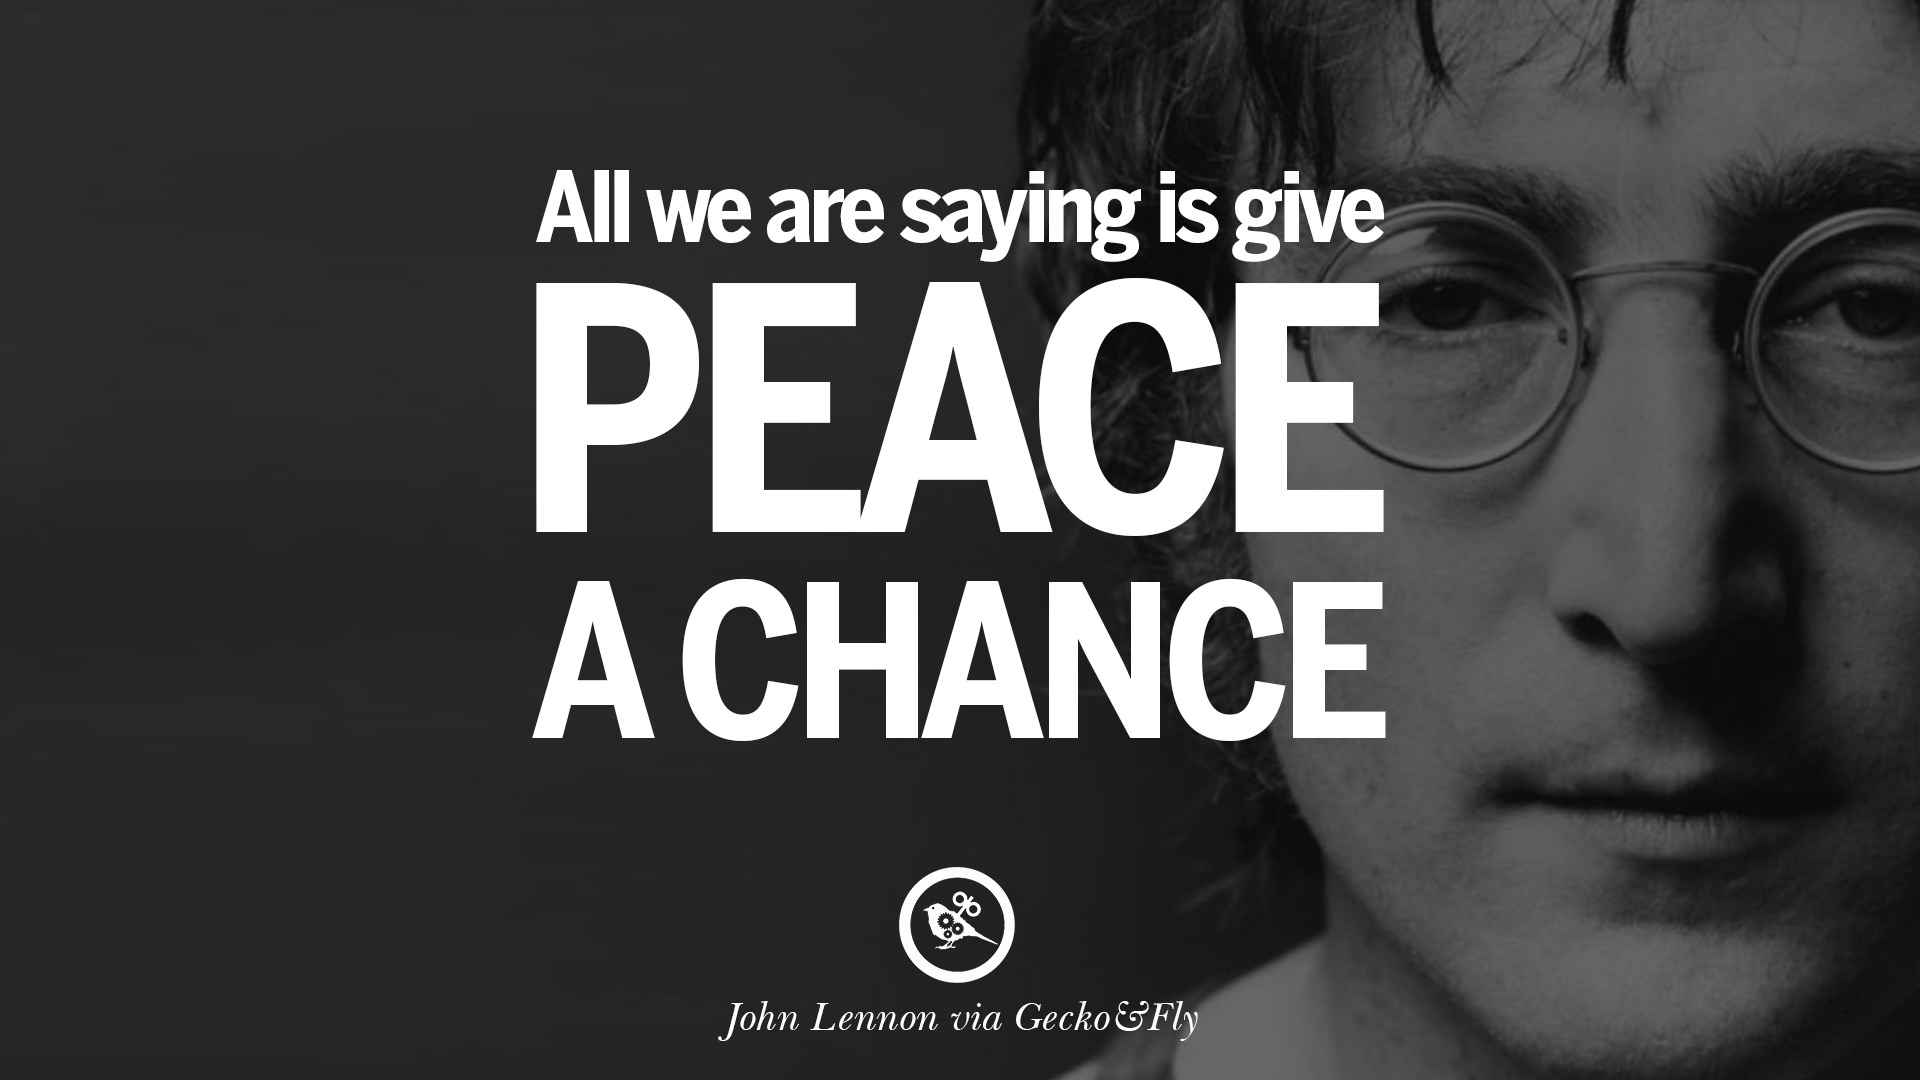 15 john lennon quotes on love imagination peace and death geckoandfly 2018 - Peace Quotes